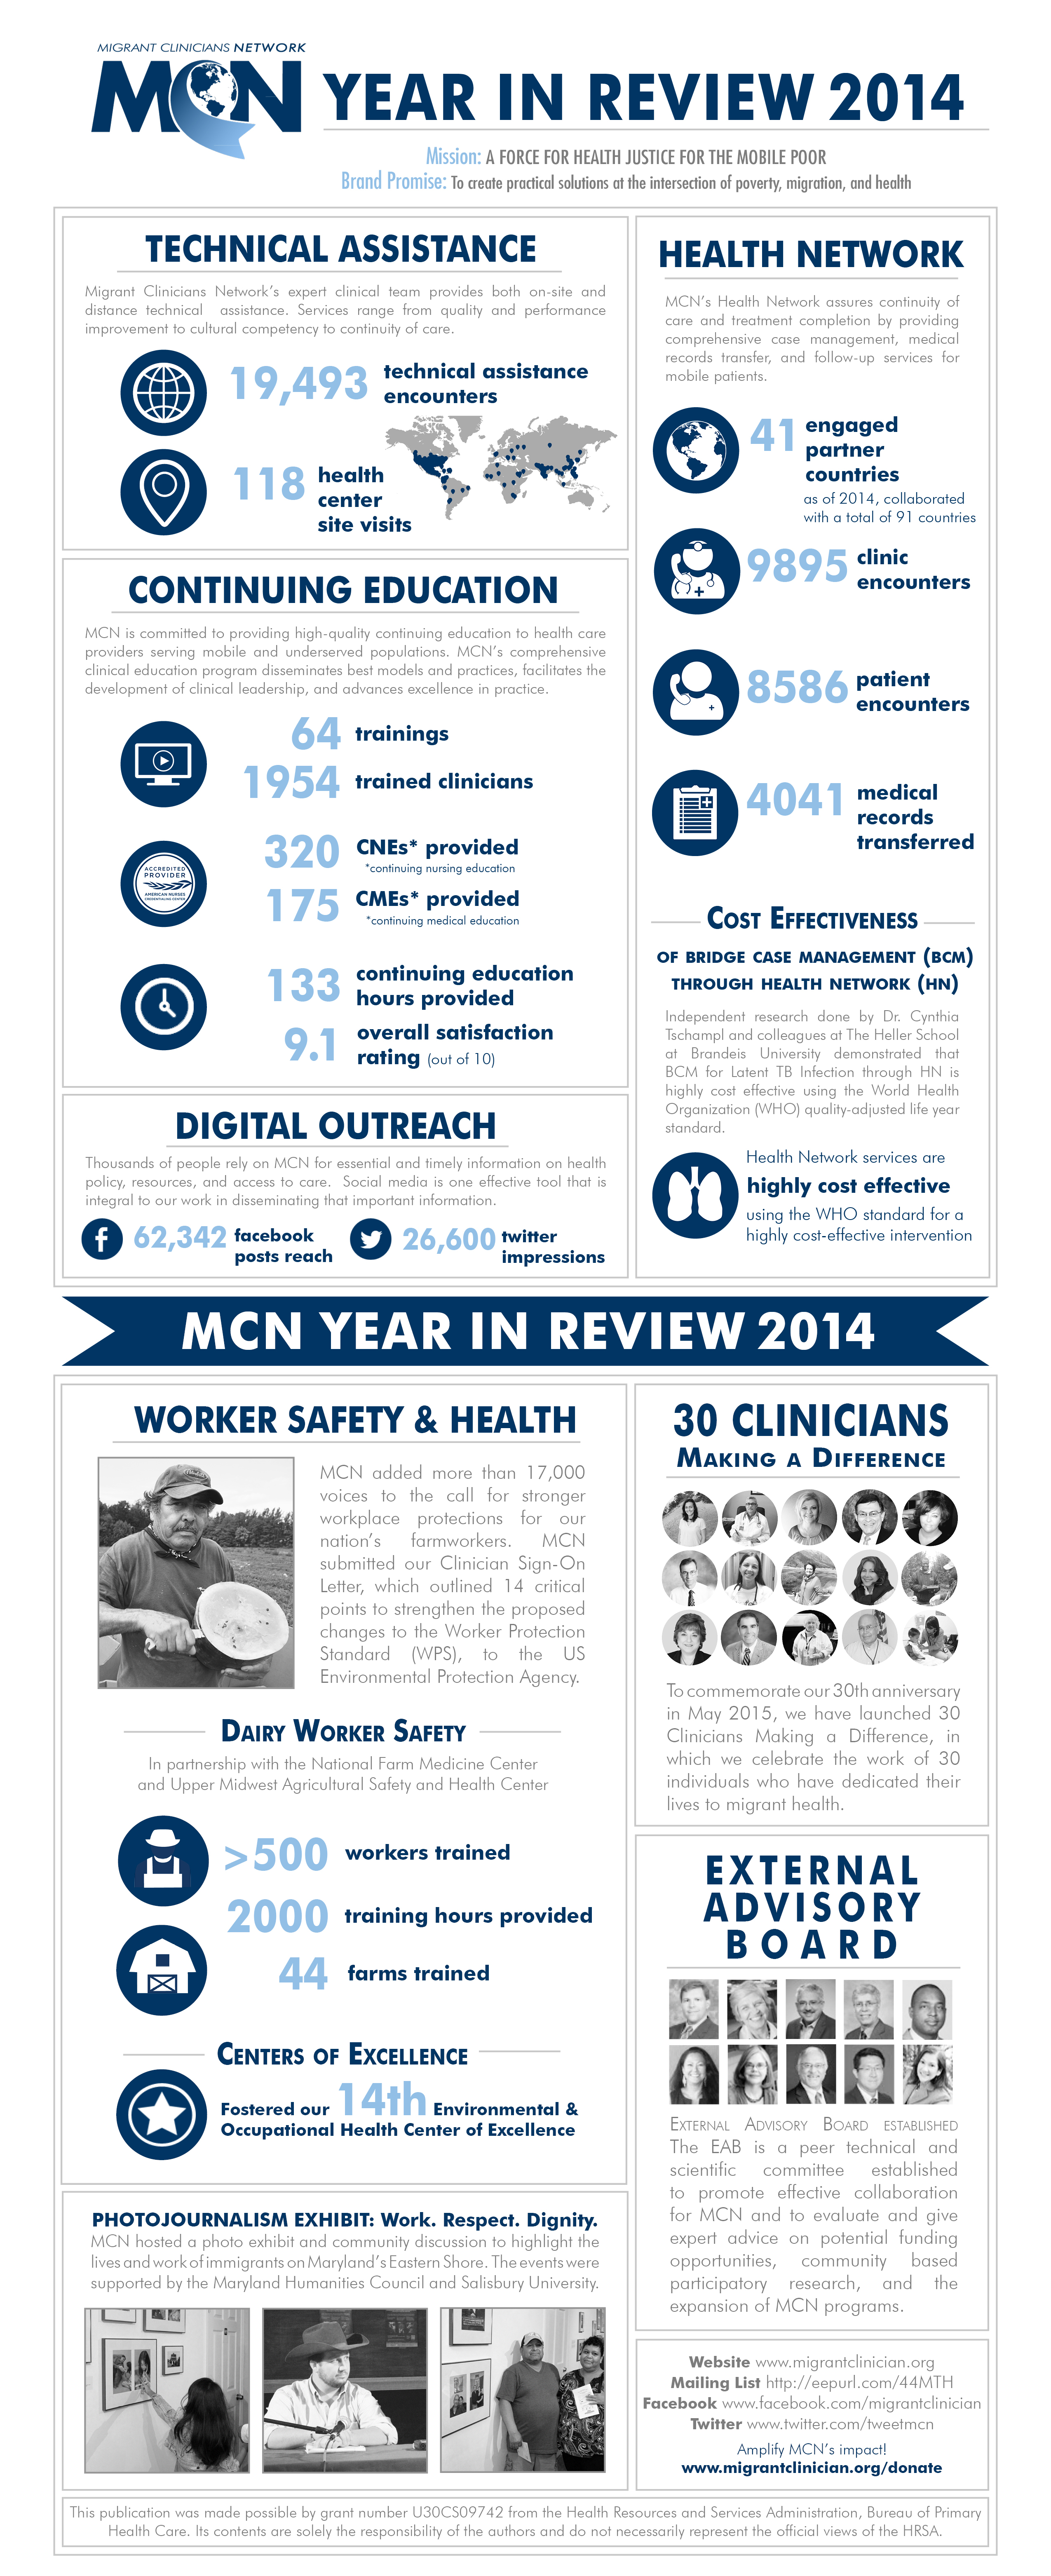 MCN Year in Review 2014